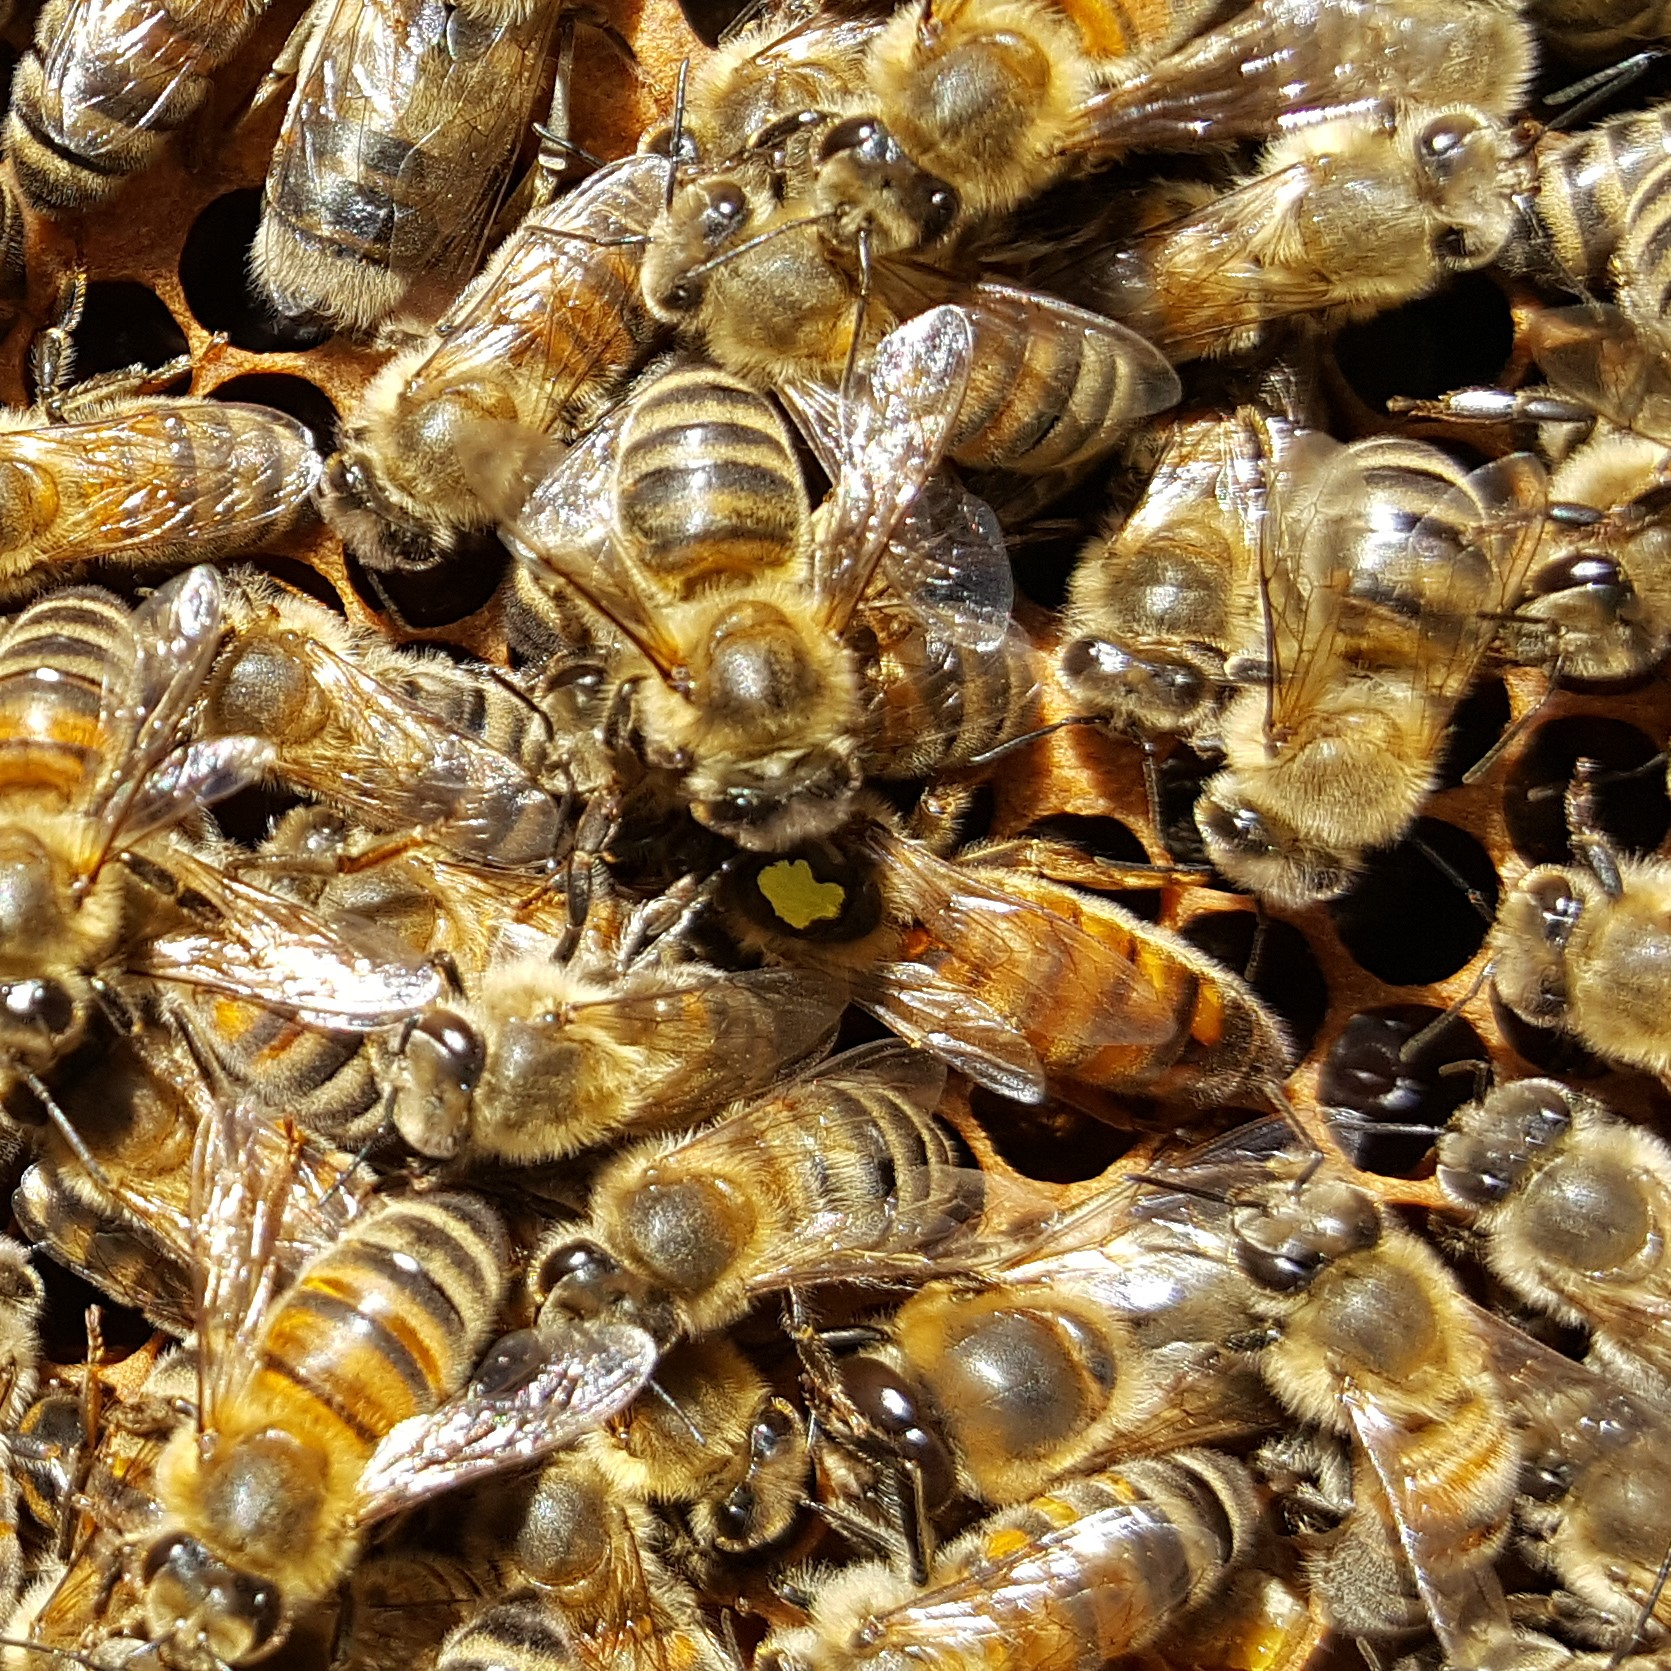 The new queen bee with the yellow dot on her back